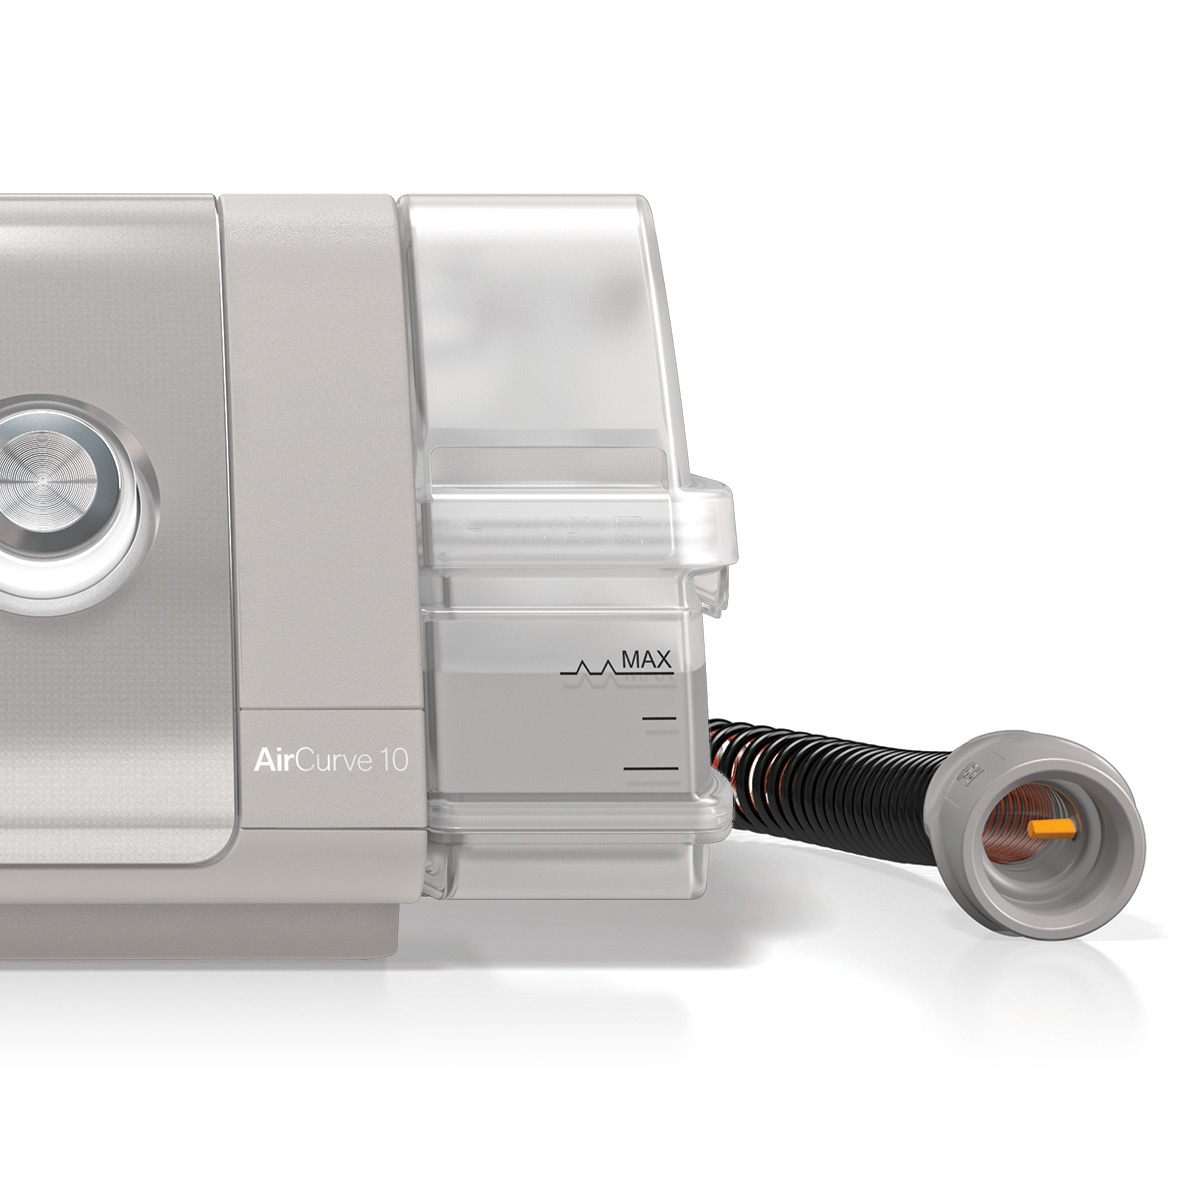 AirCurve™ 10 S BiLevel Machine Package with Built-In HumidAir Heated Humidifier